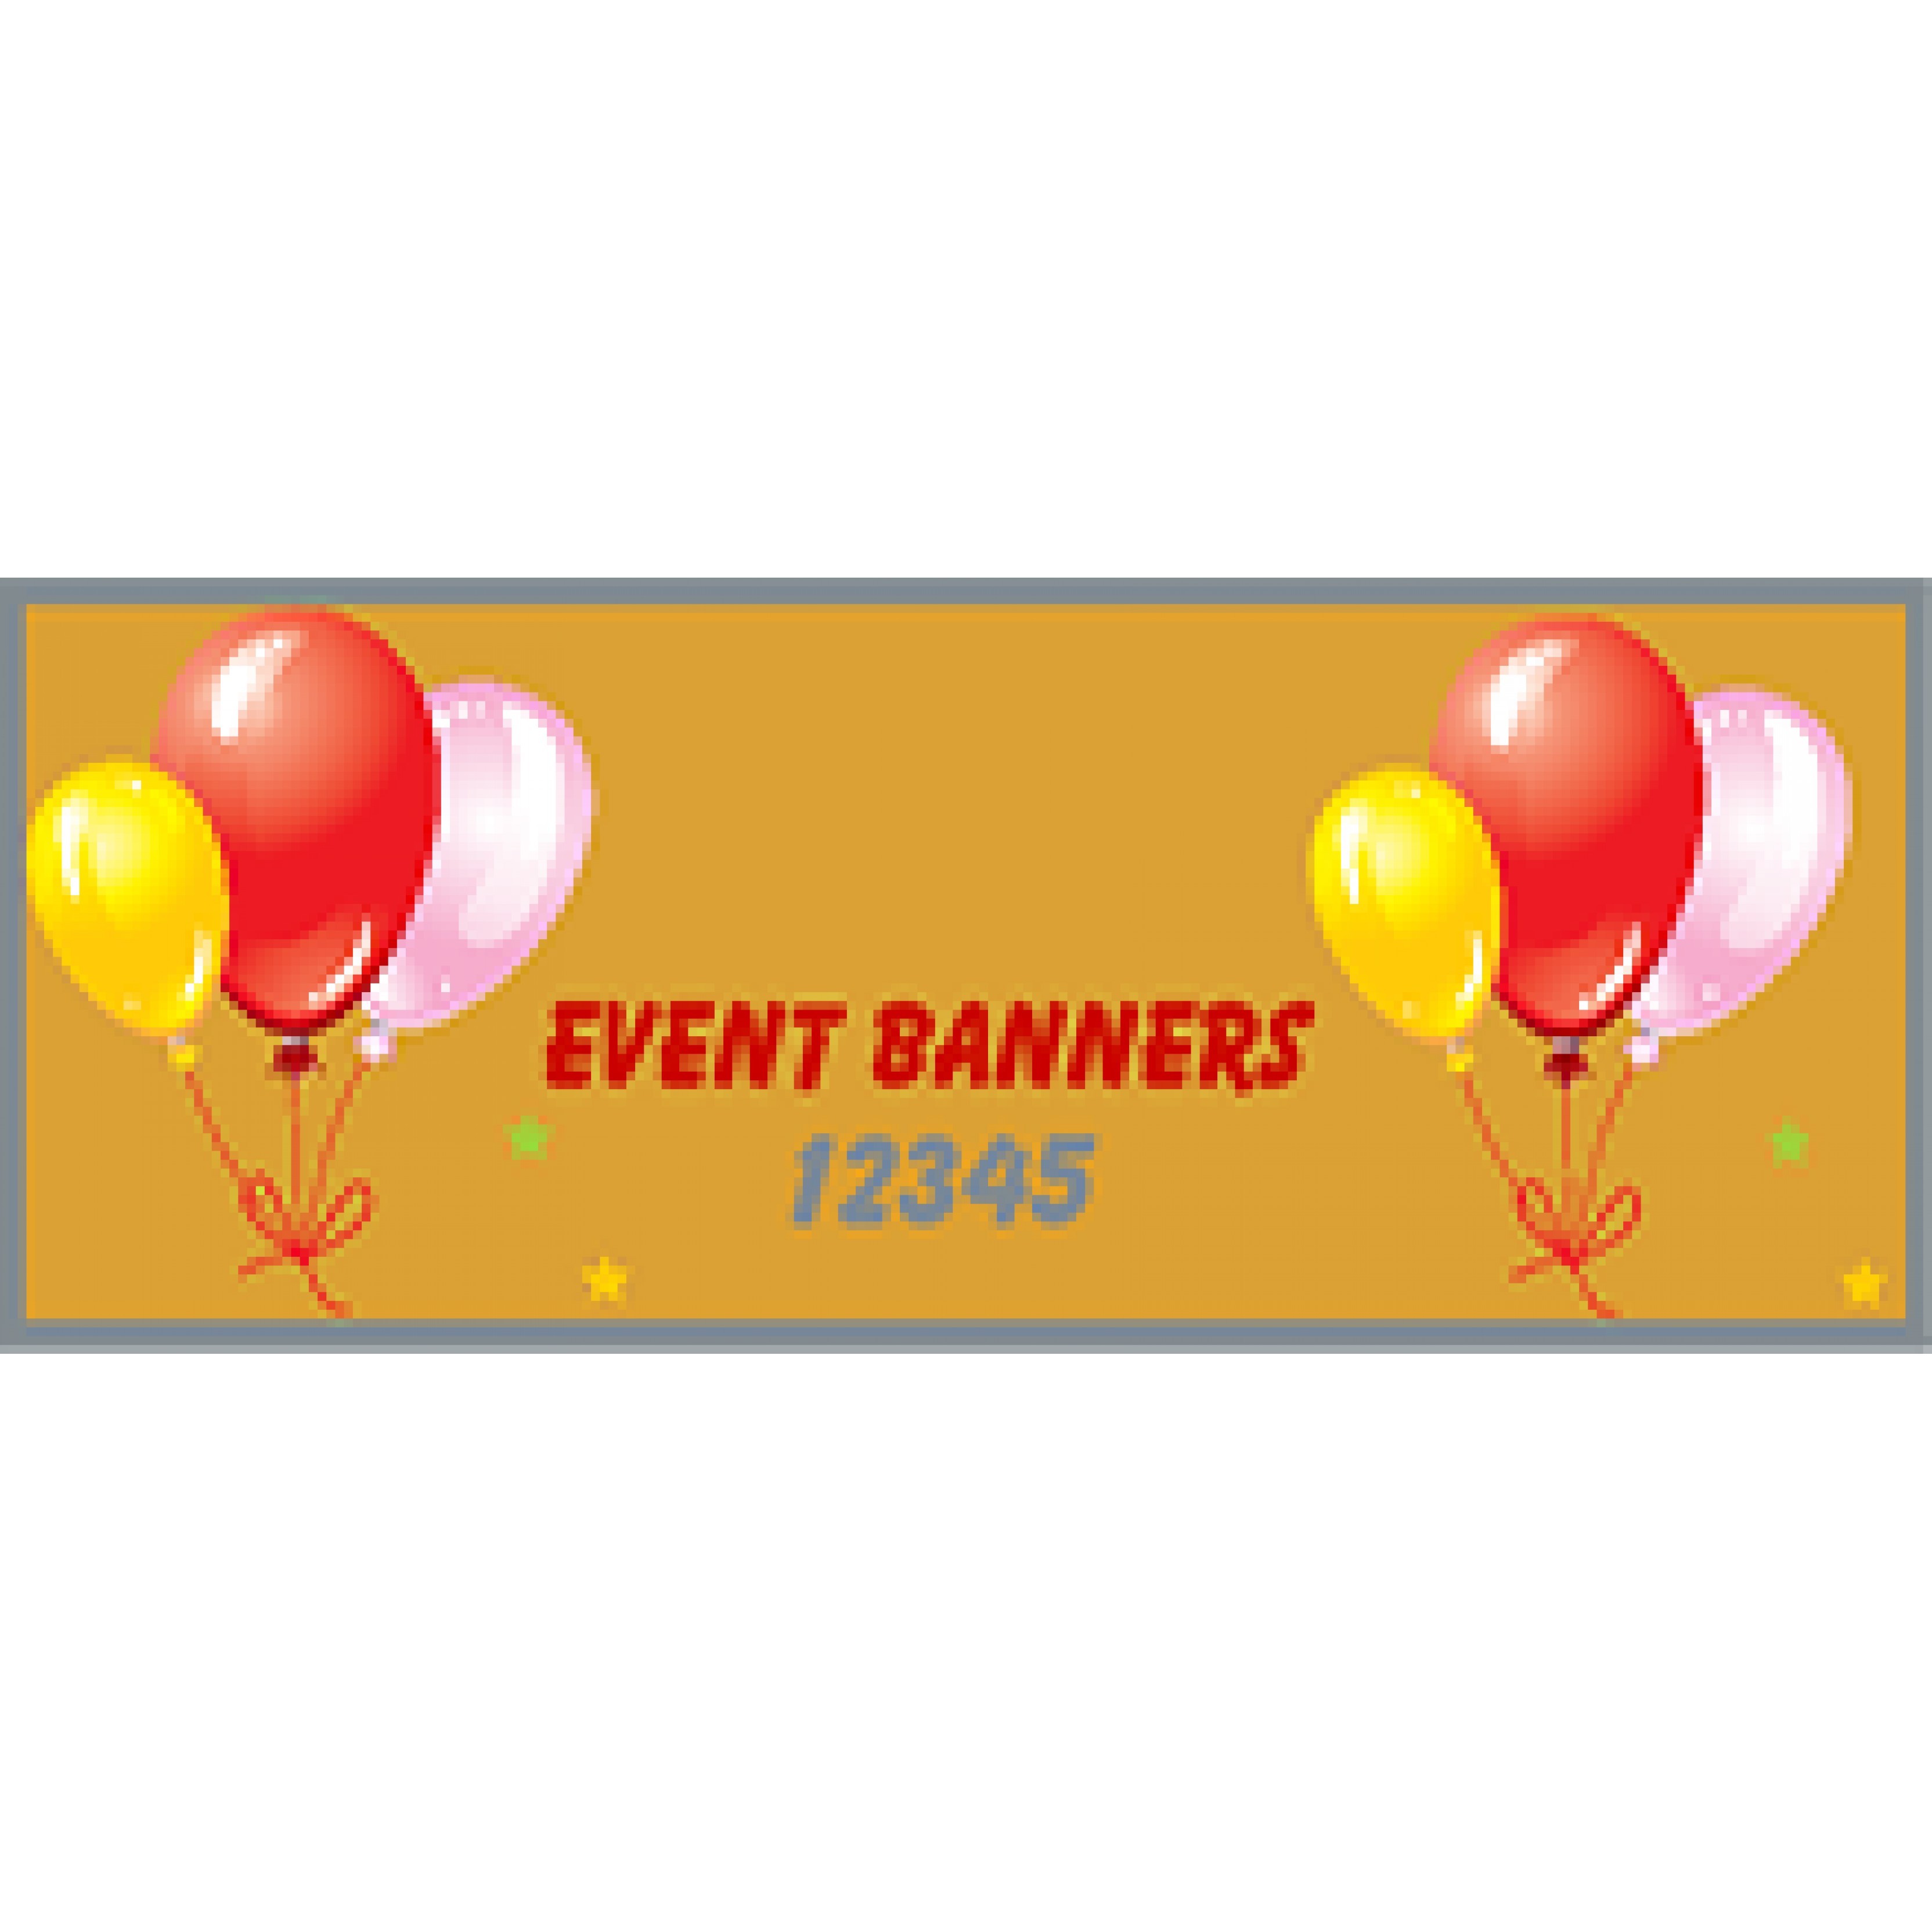 Event Banner 48x144 inches